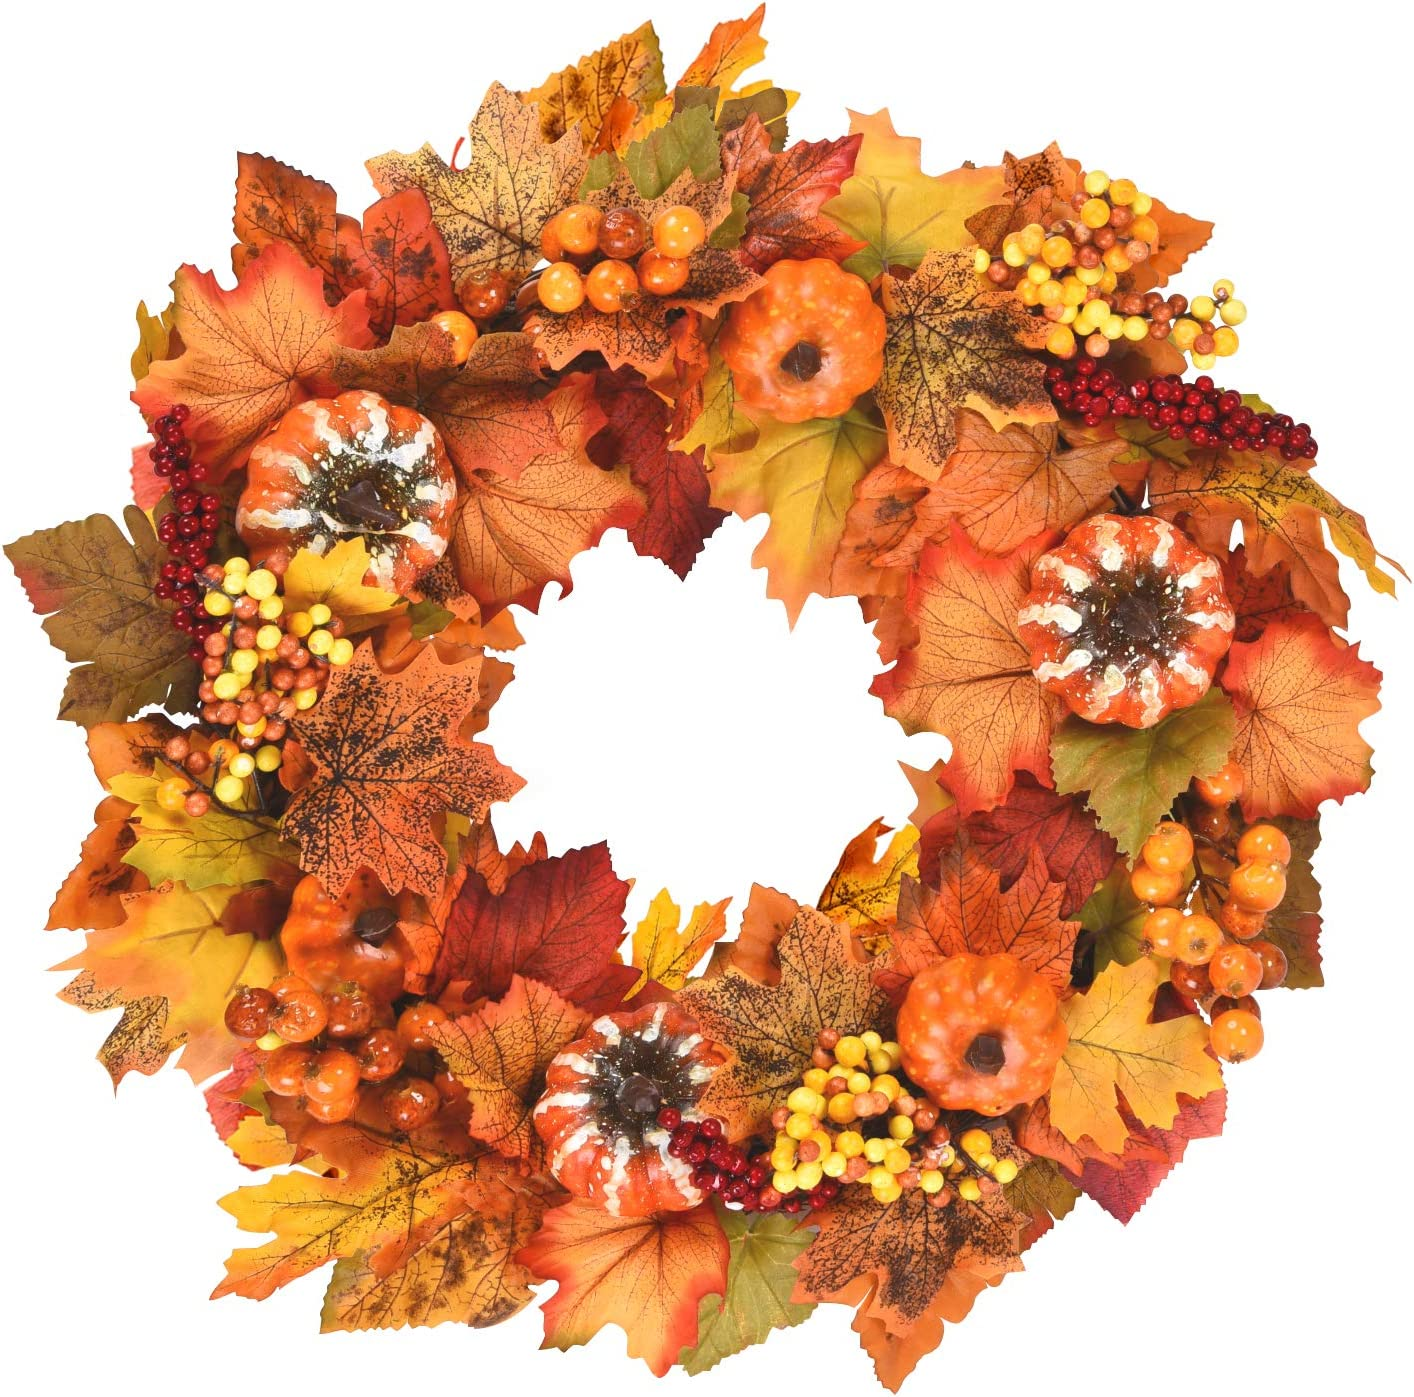 Sunm Boutique Fall Wreath with A Leaves 1 year warranty Pumpkins Special price Berries Maple